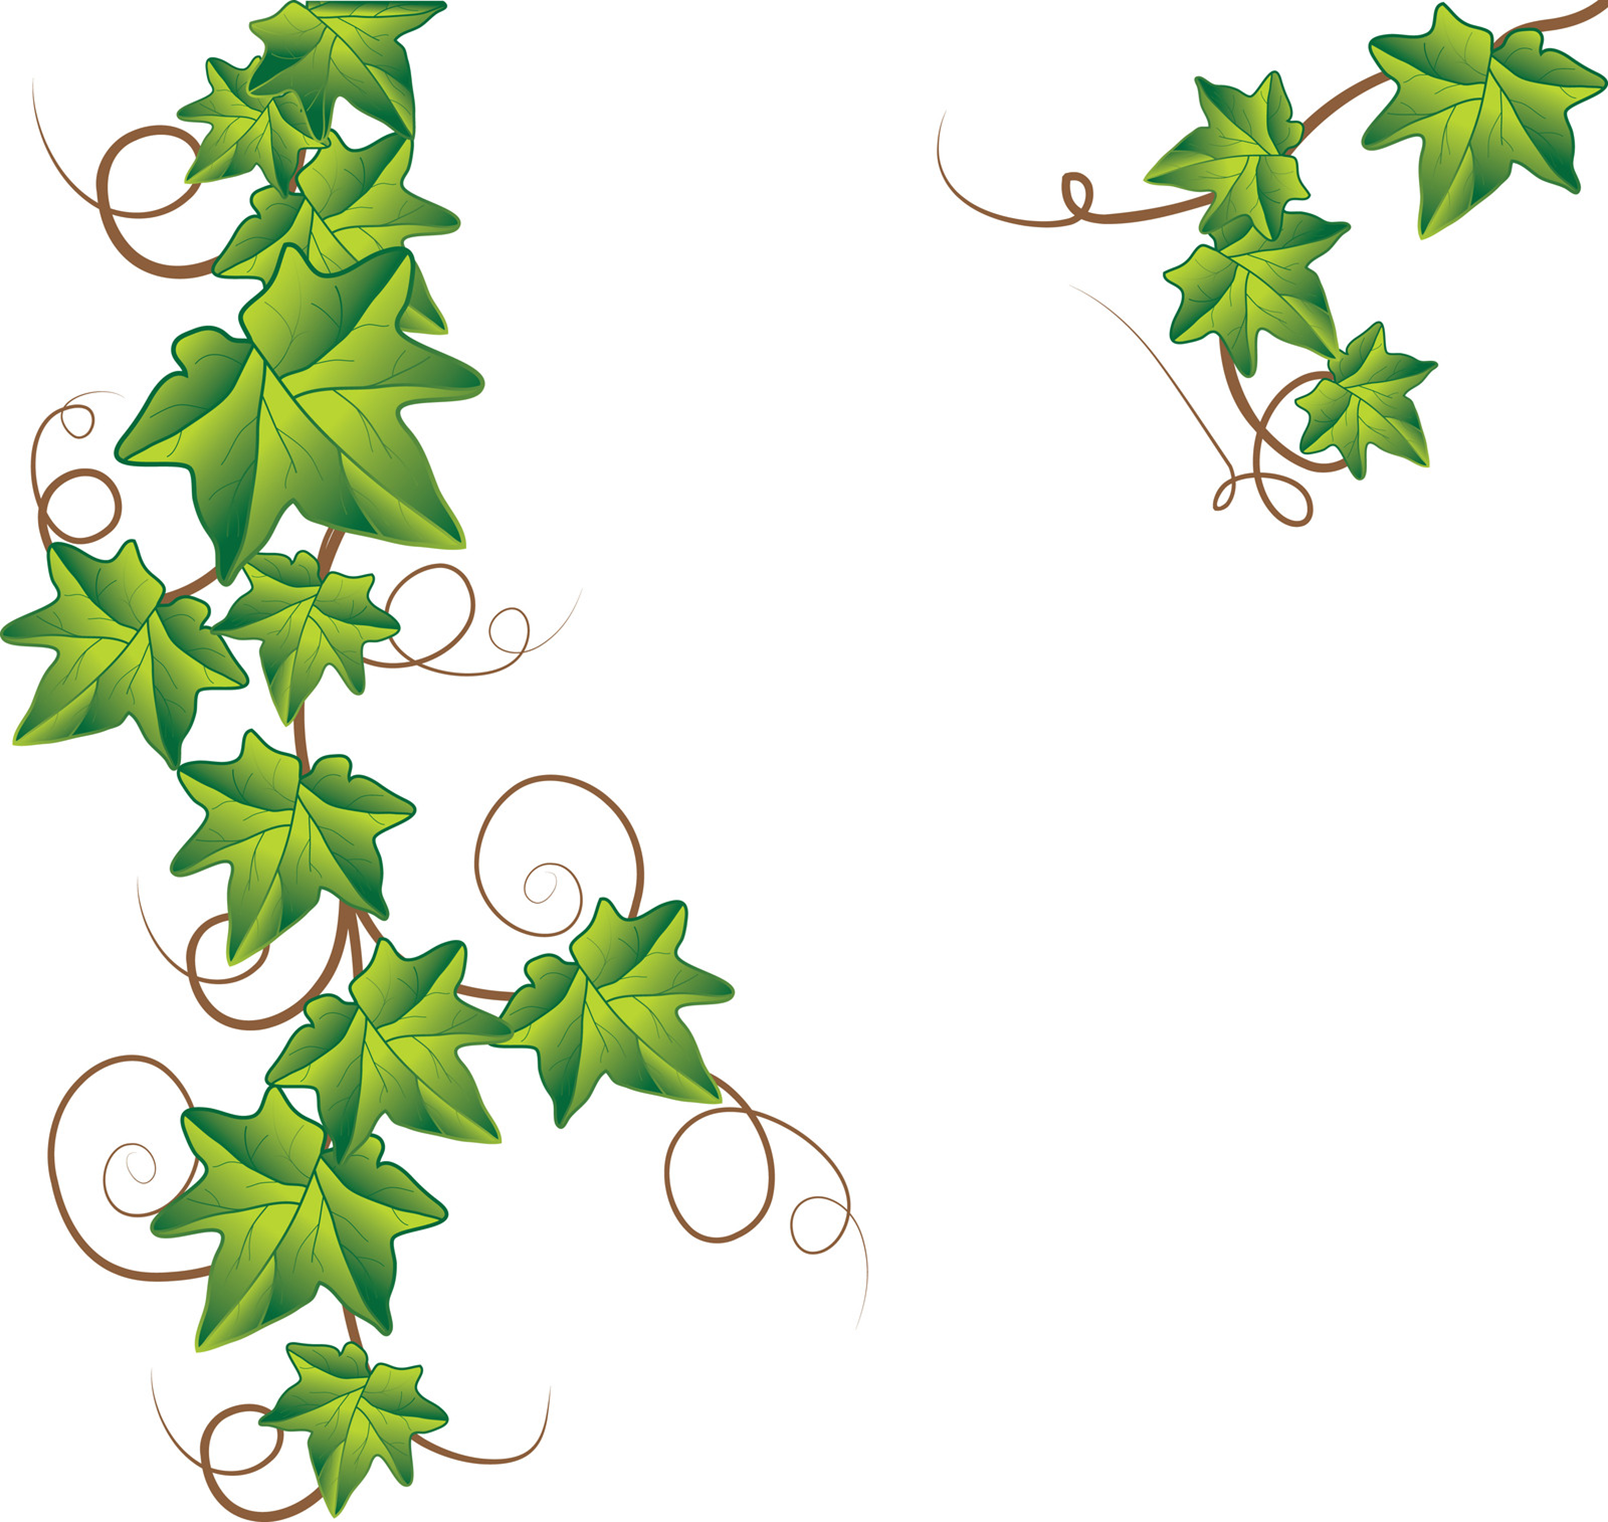 ivy vine tattoo designs ivy image vector clip art online rh pinterest com wine bottle vector vine vector free download